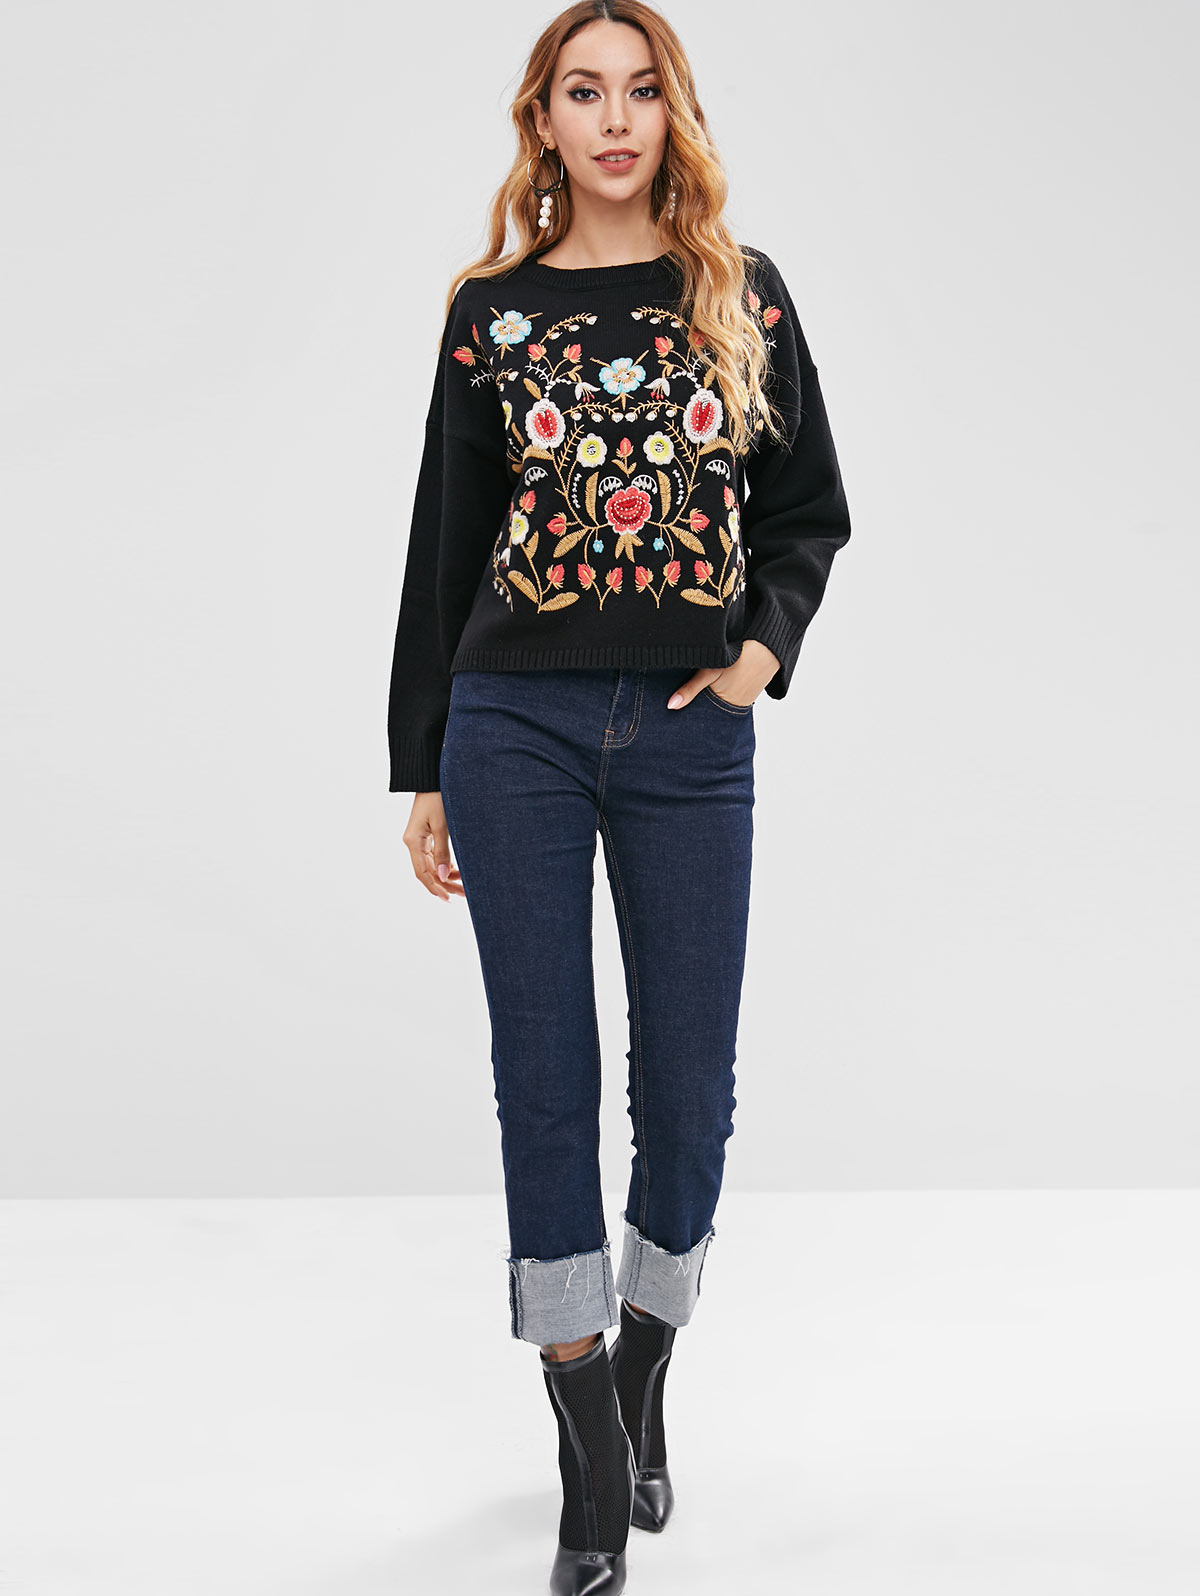 wholesale Flower Embroidery Crew Neck Sweater Loose Fit Sweater